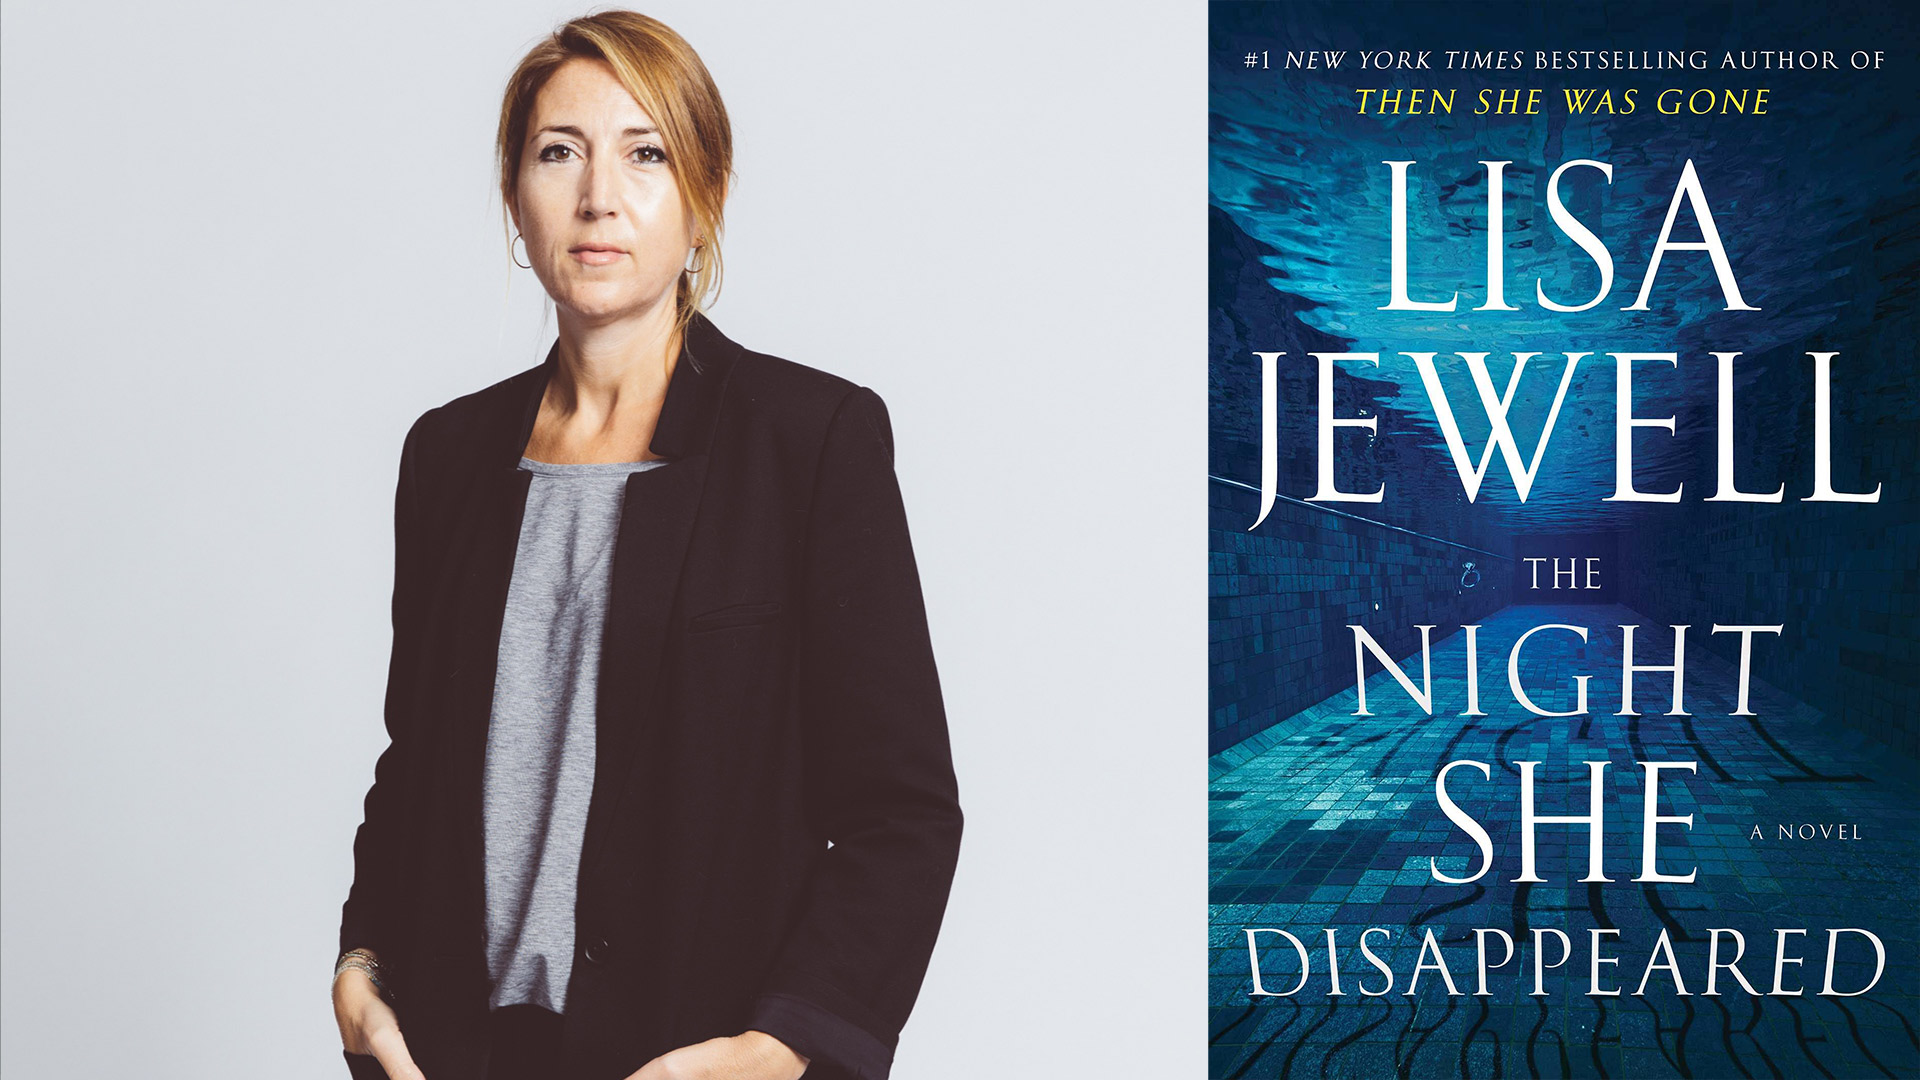 Lisa Jewell, author of The Night She Disappeared